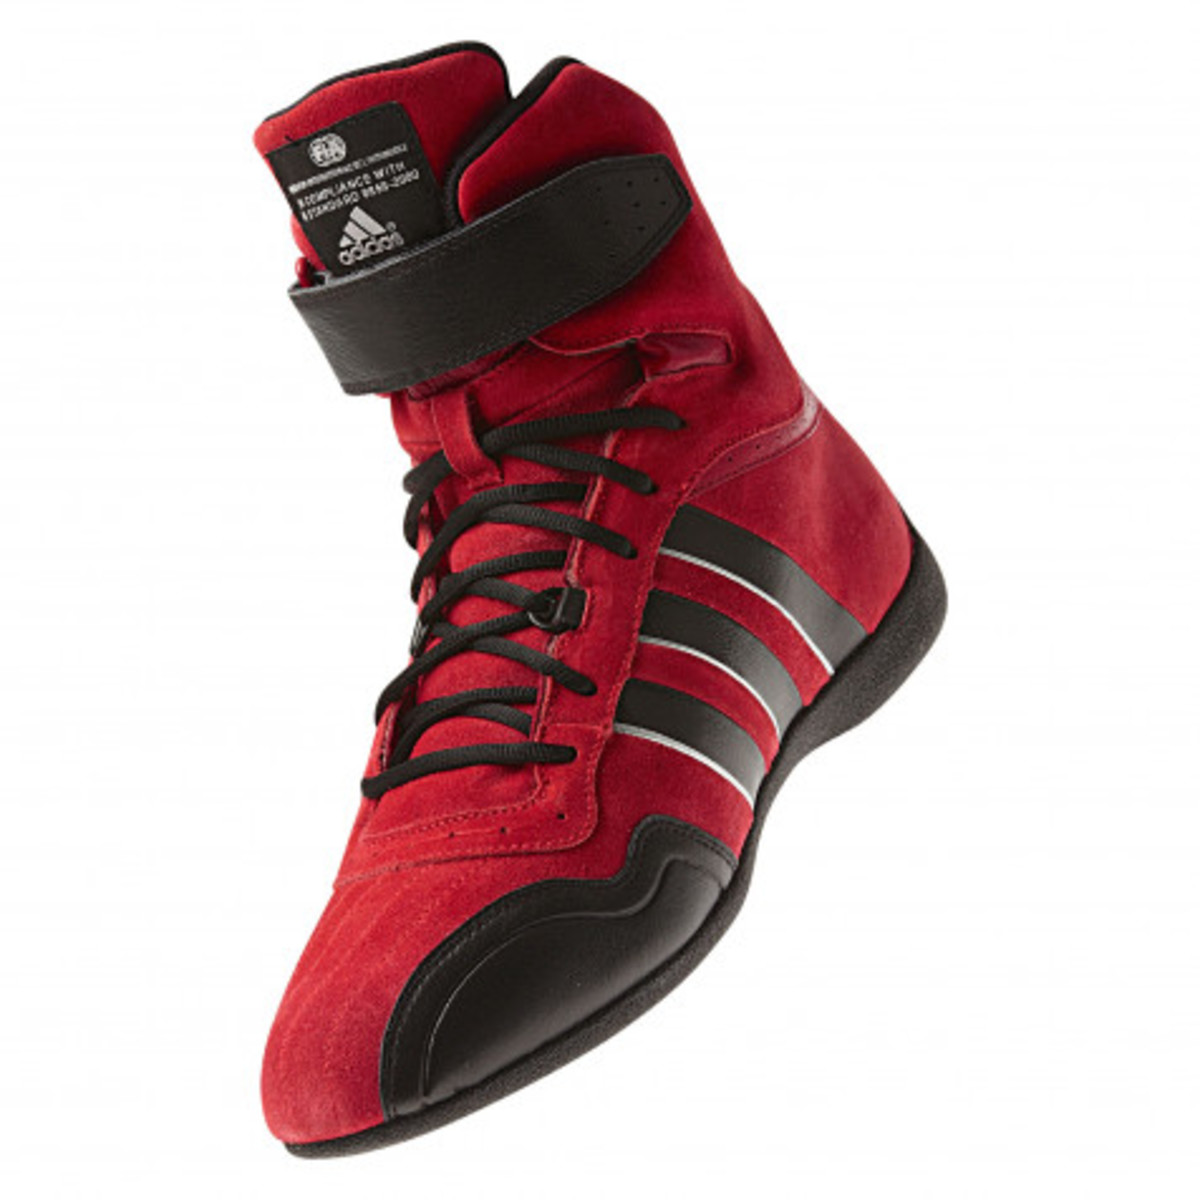 ADIDAS FEROZA ELITE RACING BOOTS - RED/BLACK